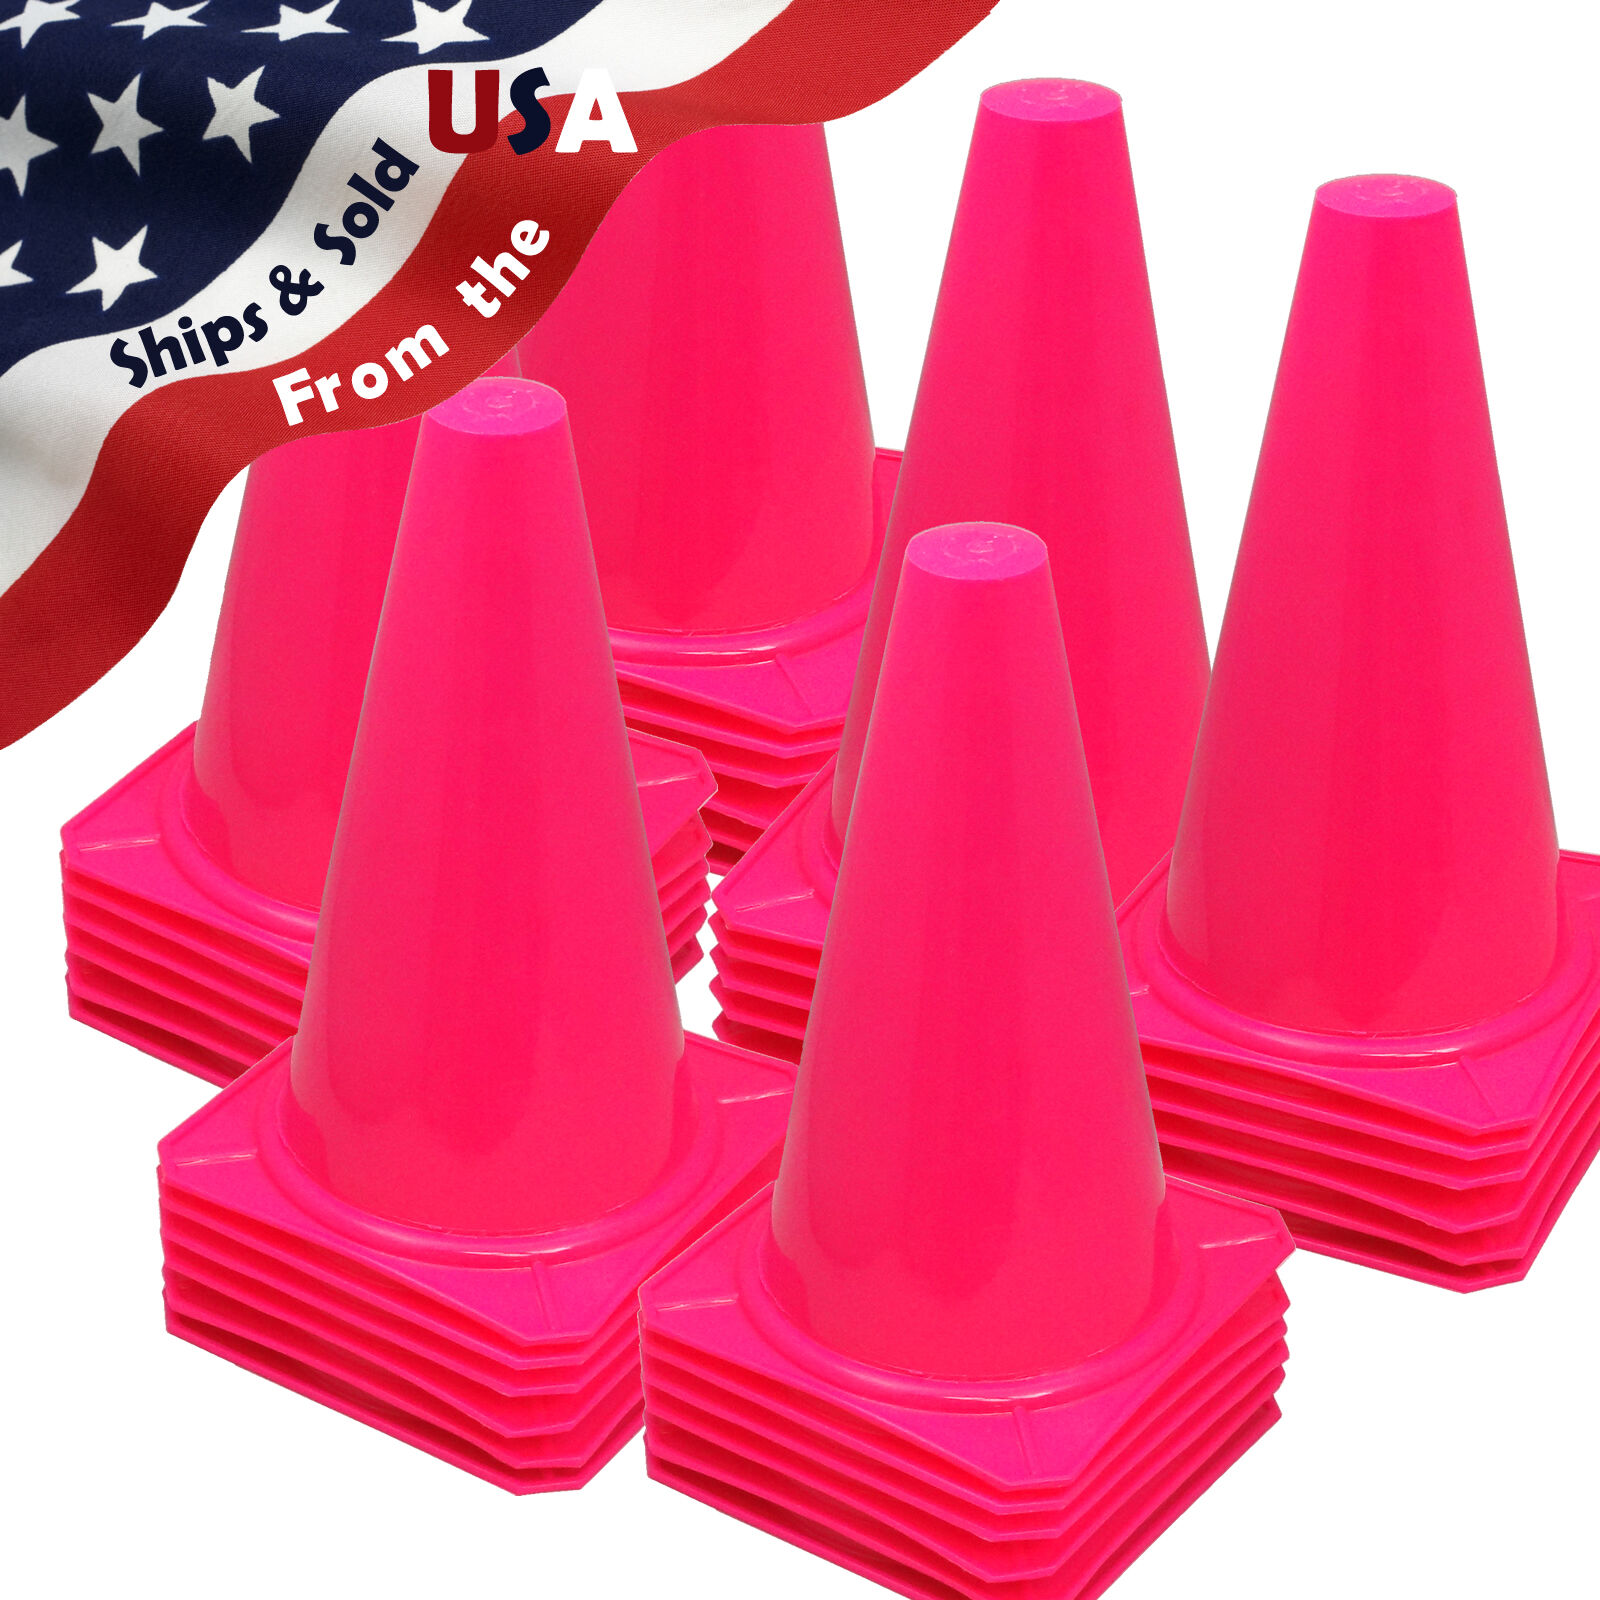 9  INCH PINK CONES (SET OF 36) SPORTS AGILITY TRAFFIC FIELD ROAD SOCCER  USA